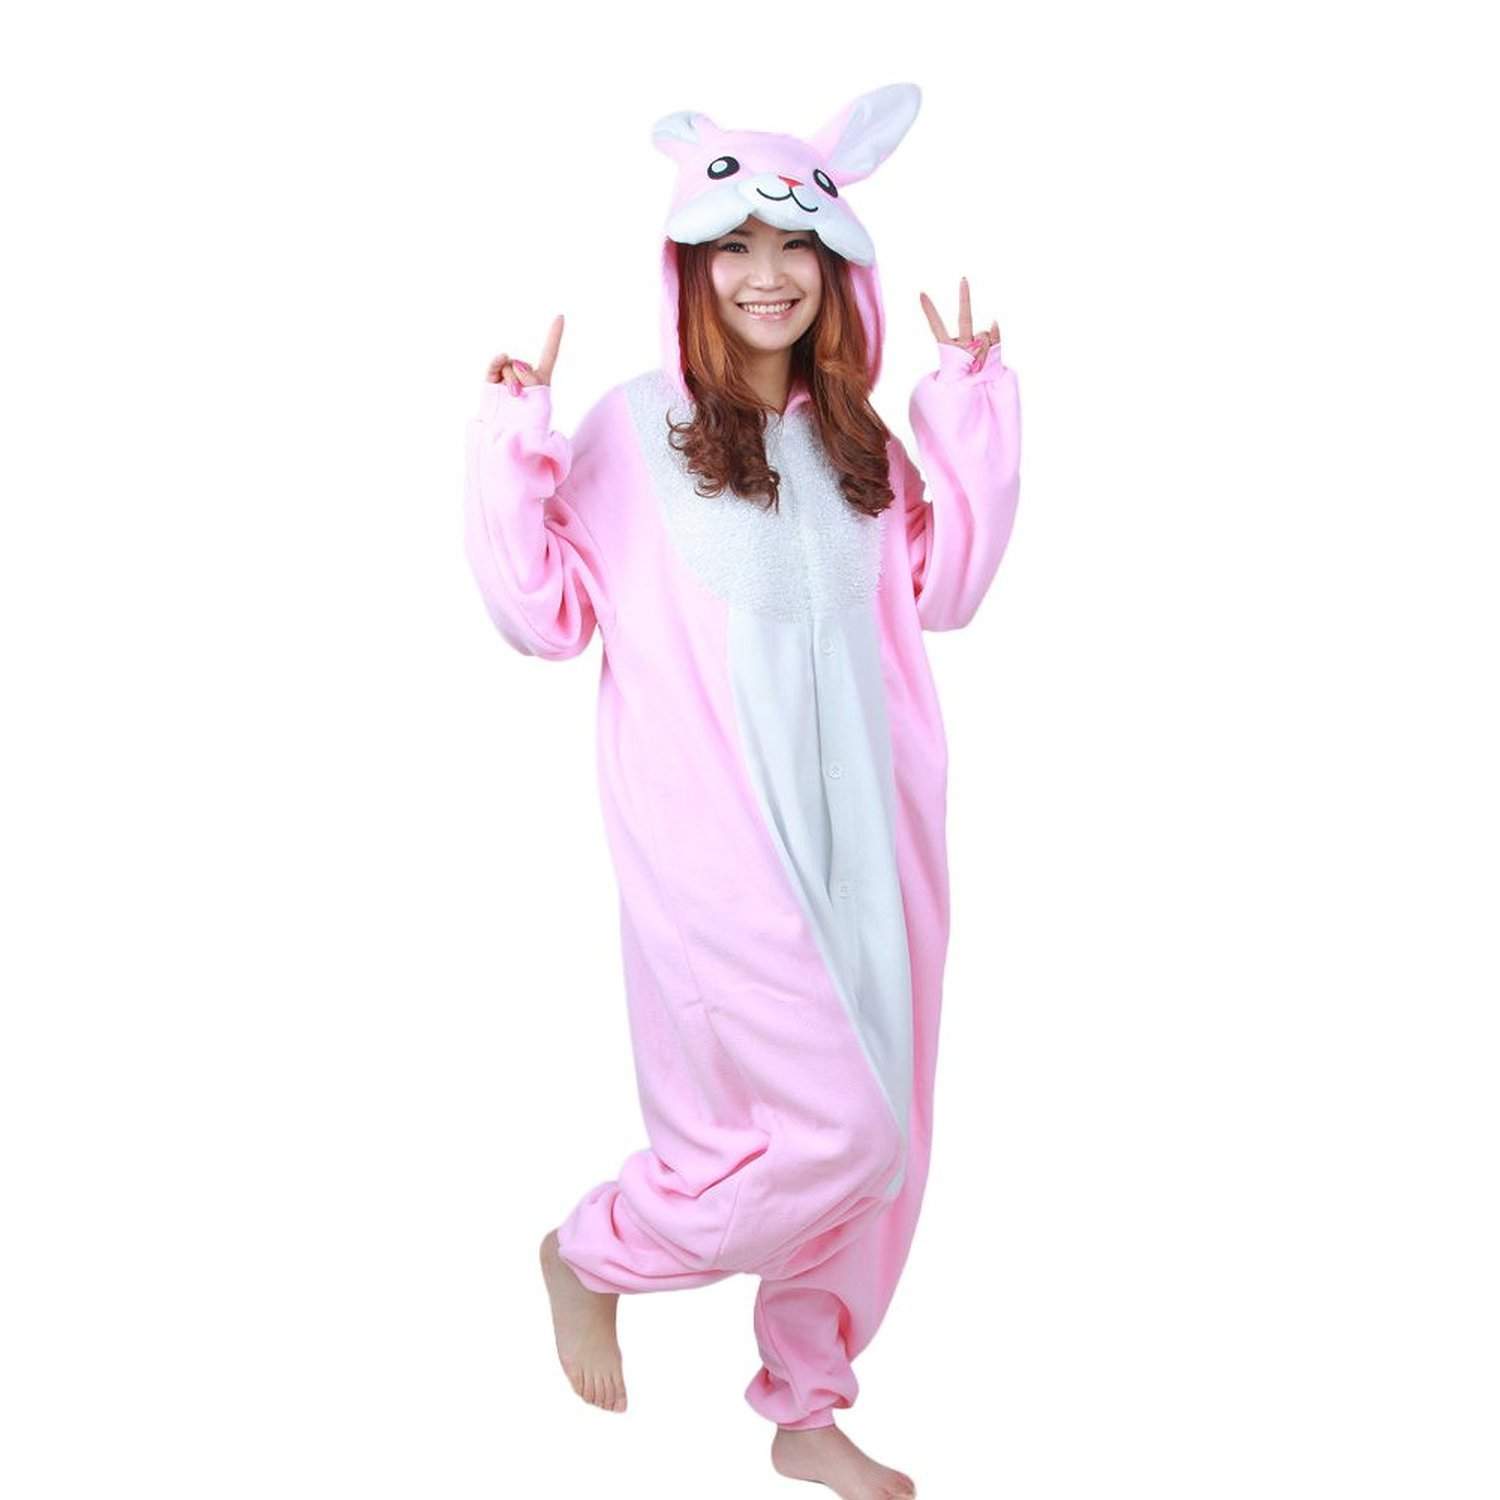 SZTARA Unisex Halloween Fancy Dress Kigurumi Pyjamas Anime Costume Cartoon Sleepwear Christmas Onesie